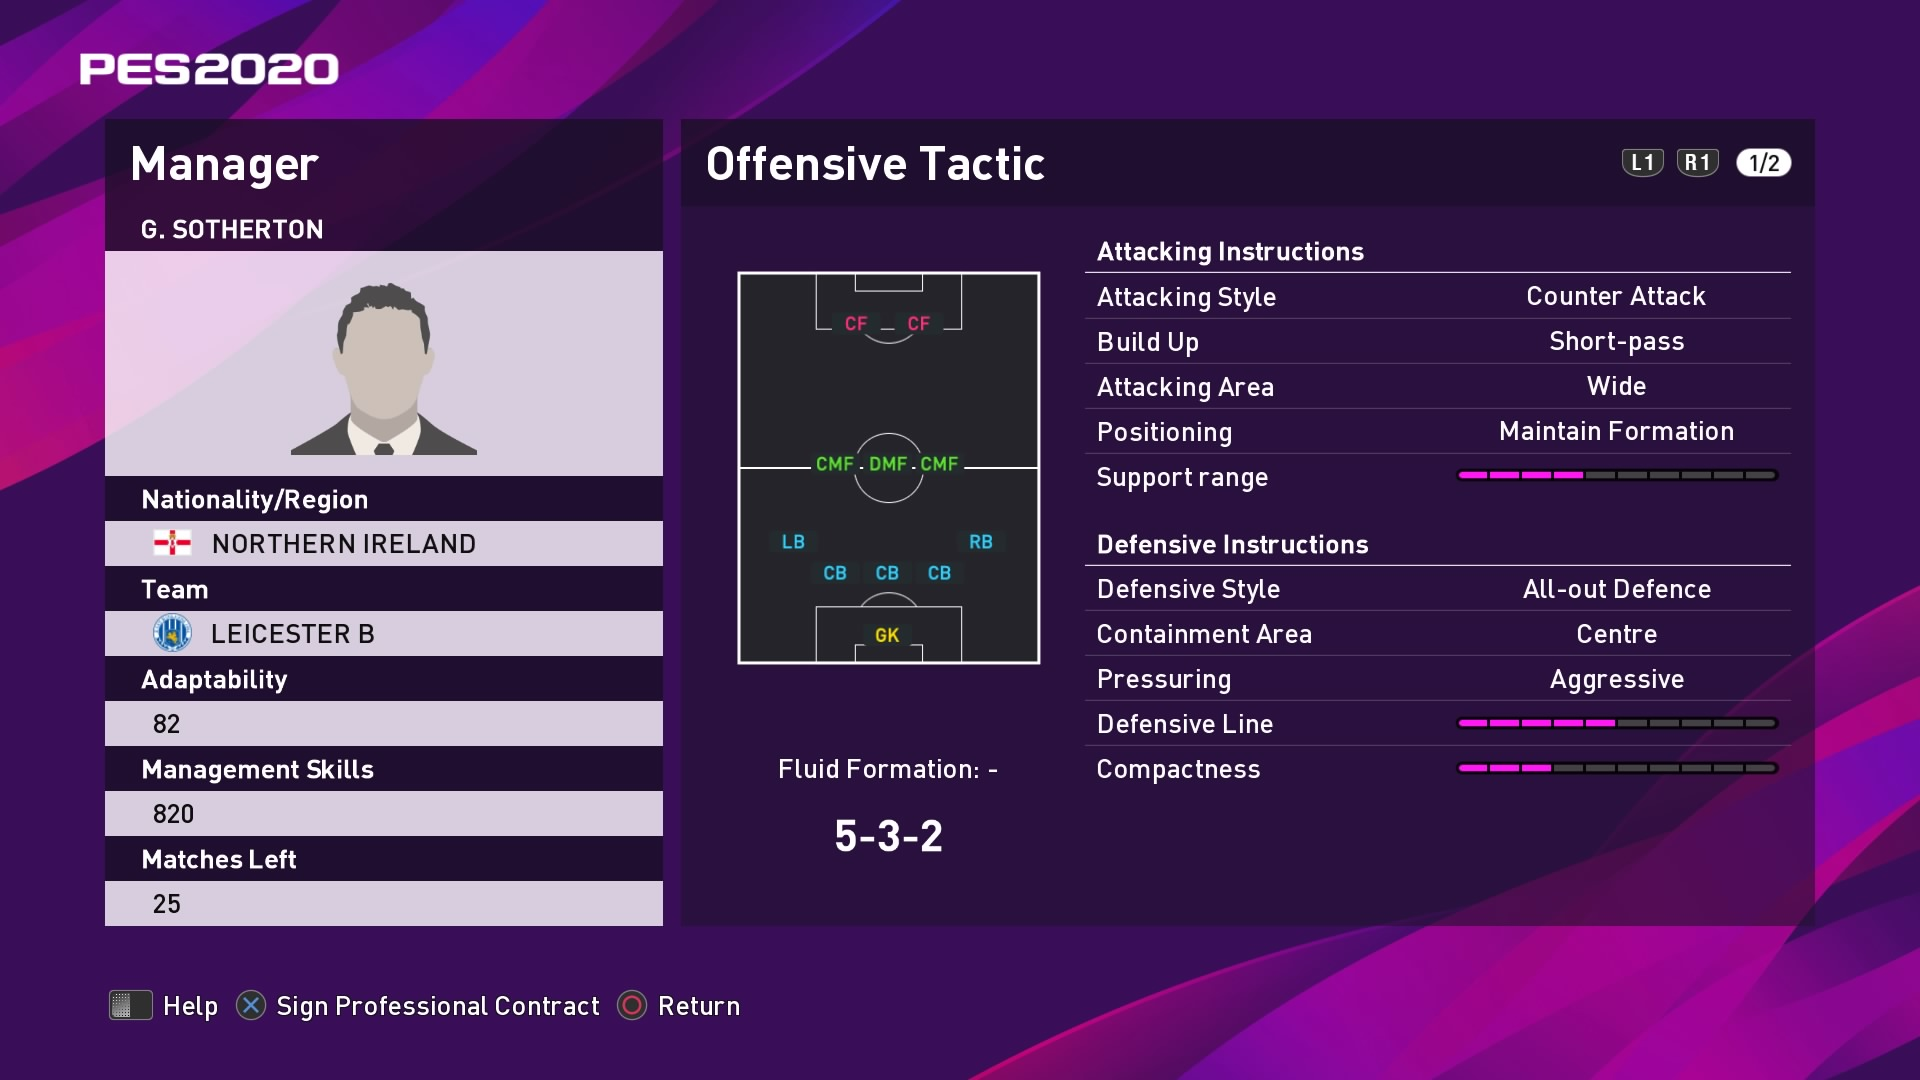 G. Sotherton (4) (Brendan Rodgers) Offensive Tactic in PES 2020 myClub